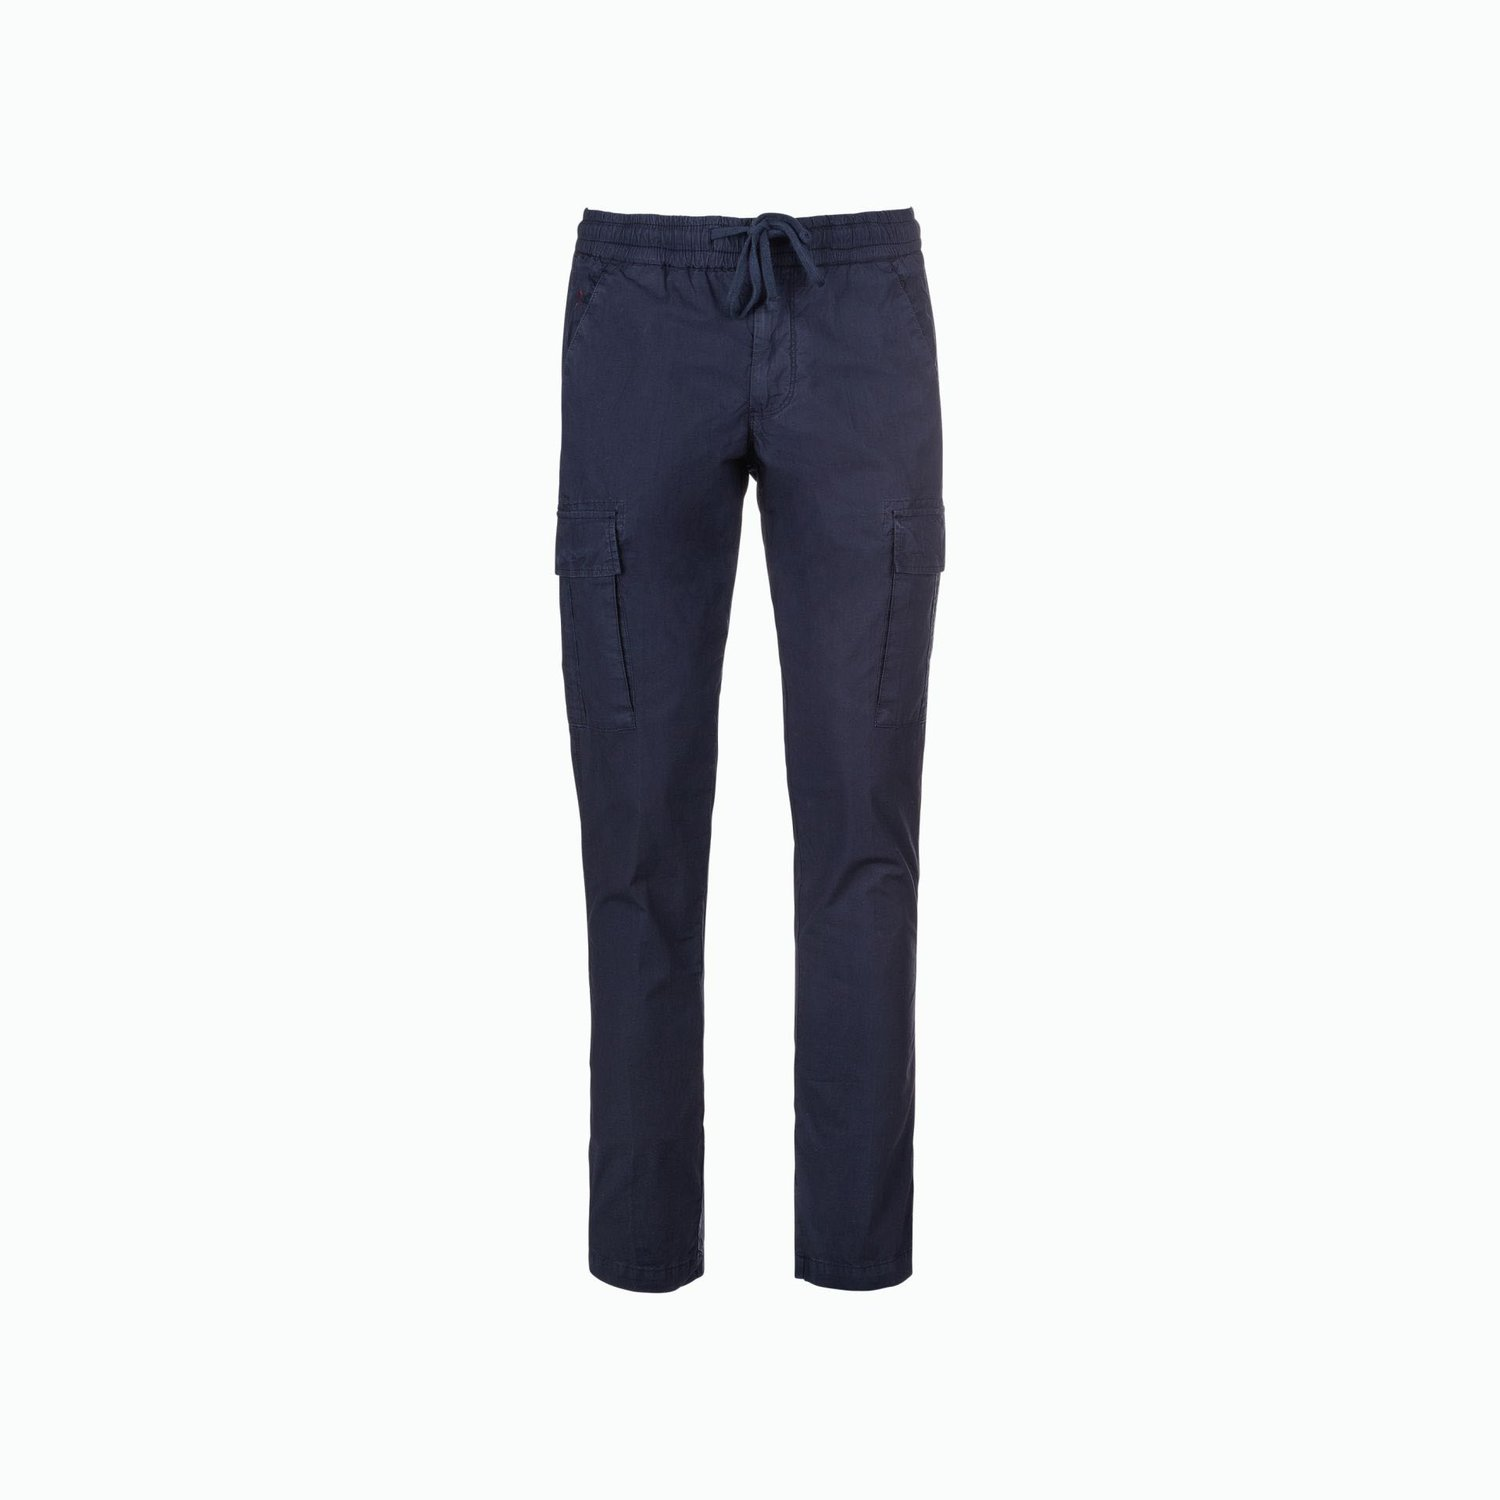 Trousers A77 - Navy